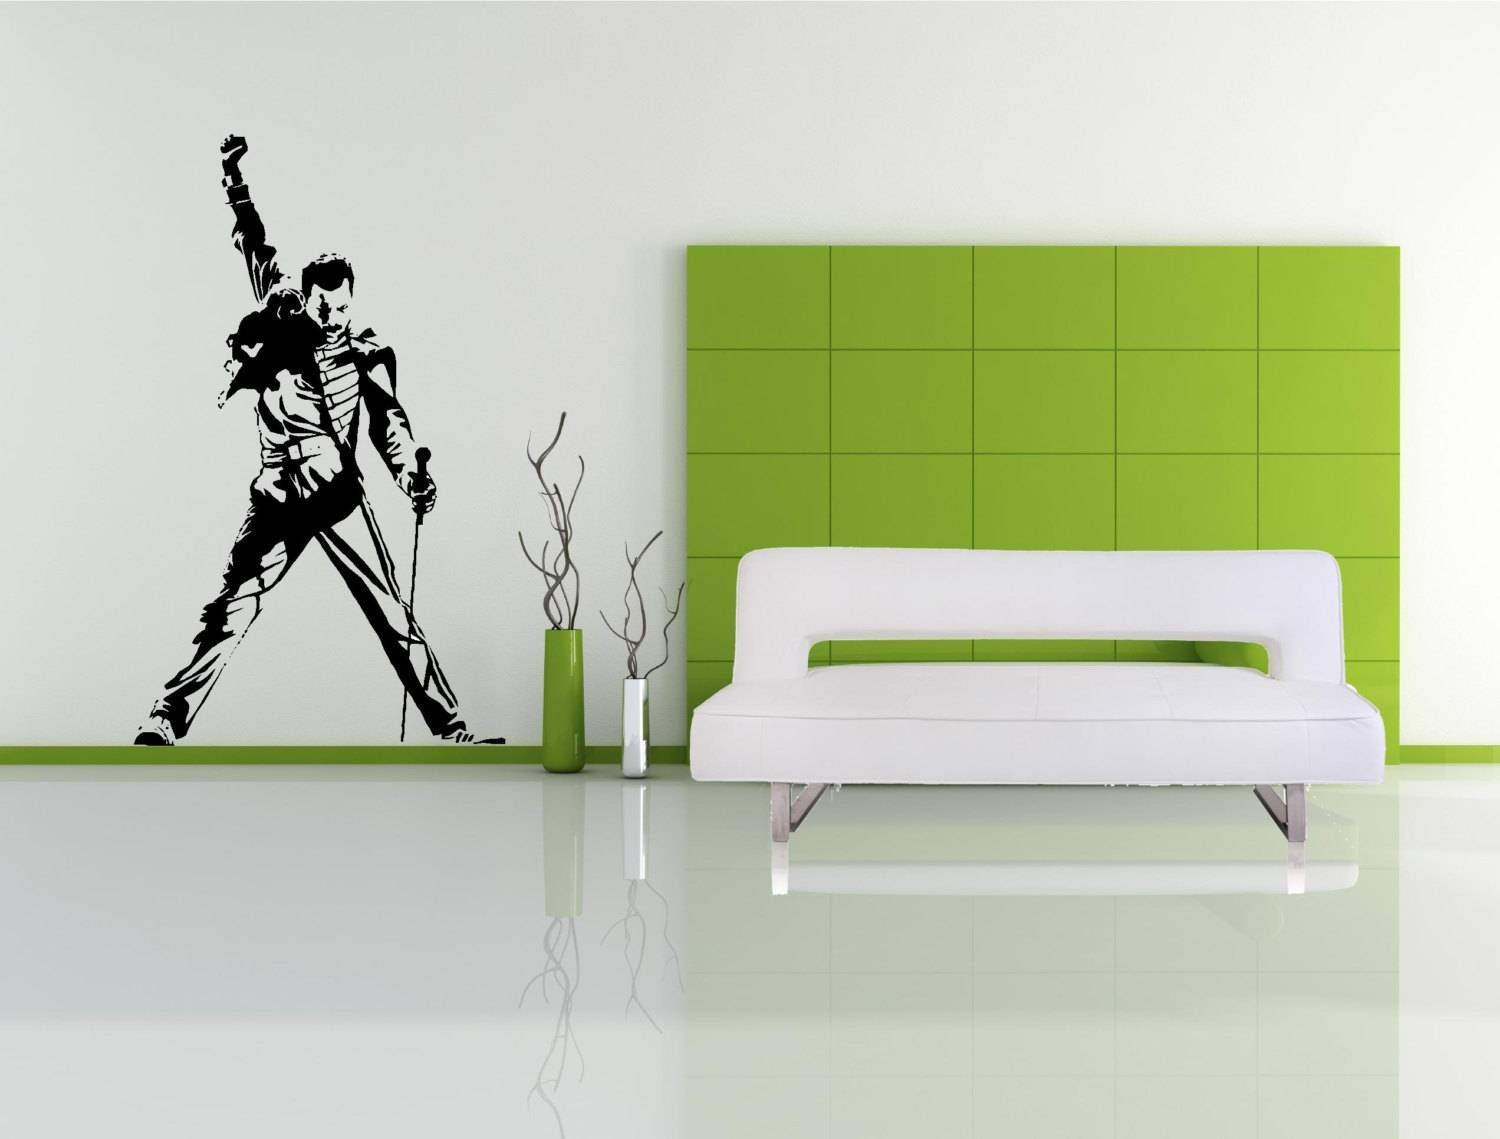 Large Freddie Mercury Wall Decal Queen Wall Art Sticker Regarding Most Up To Date Freddie Mercury Wall Art (View 1 of 15)